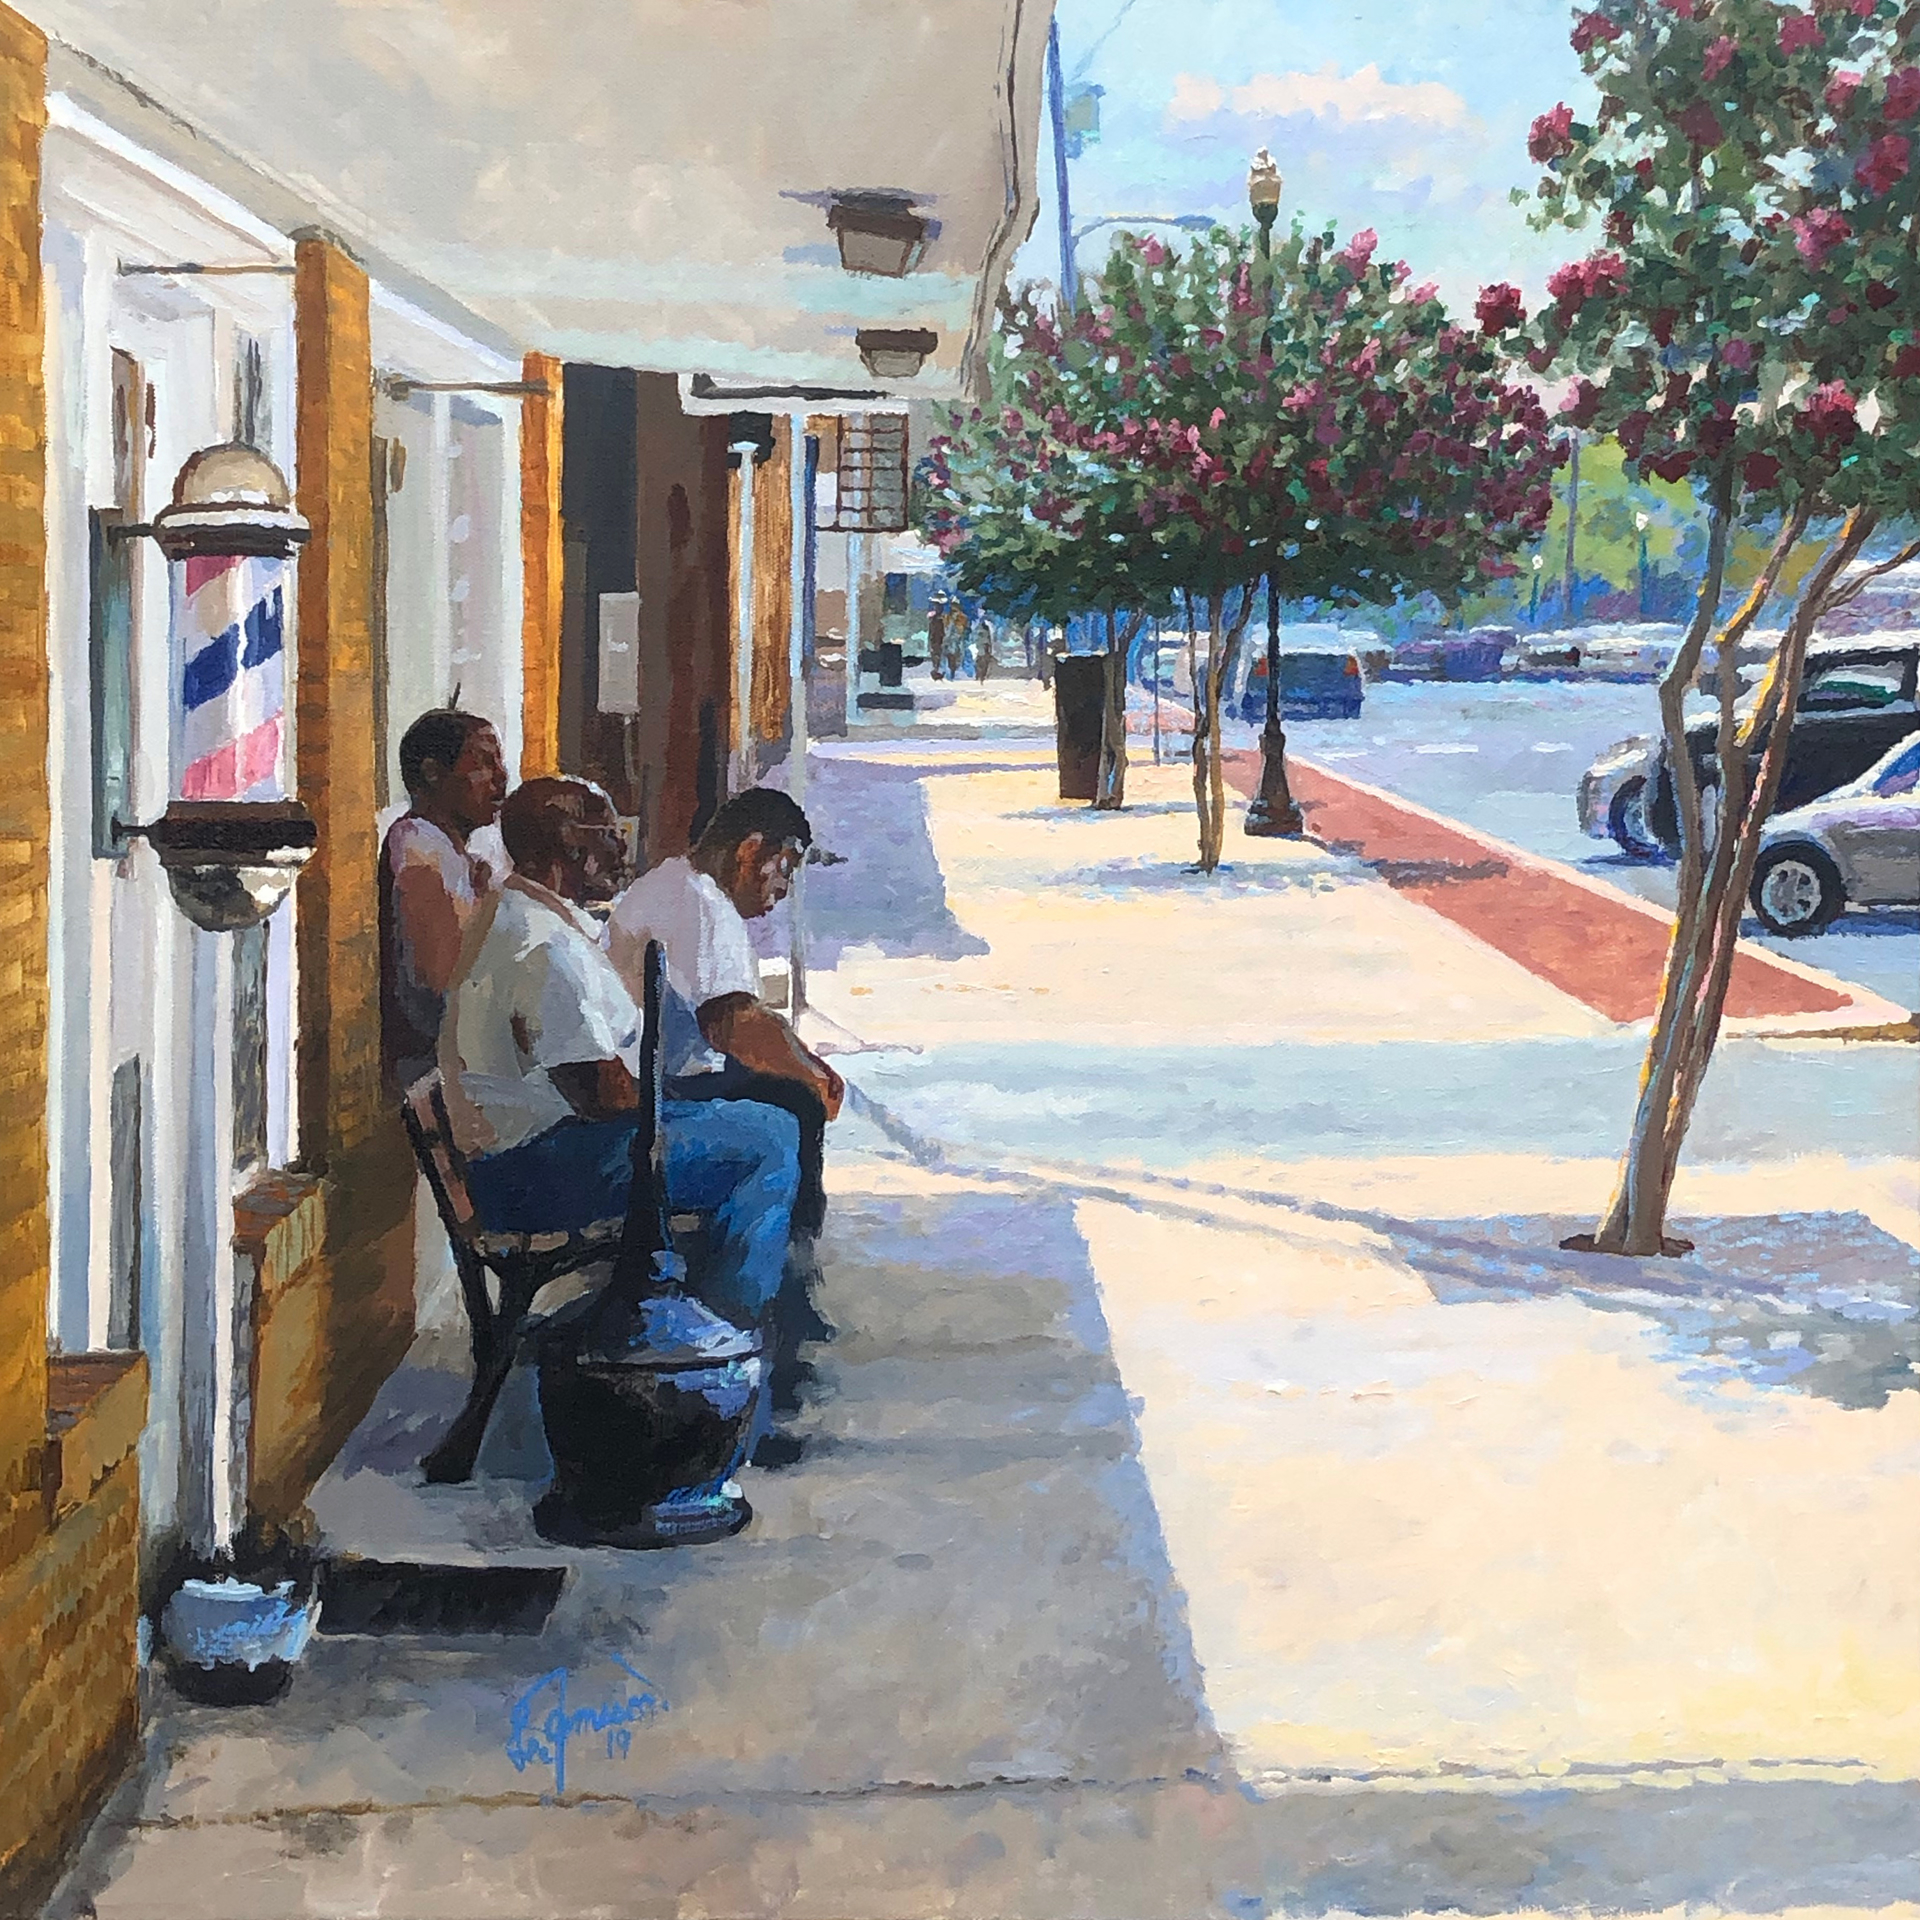 Connected, Downtown Lufkin, Texas by Lee Jamison